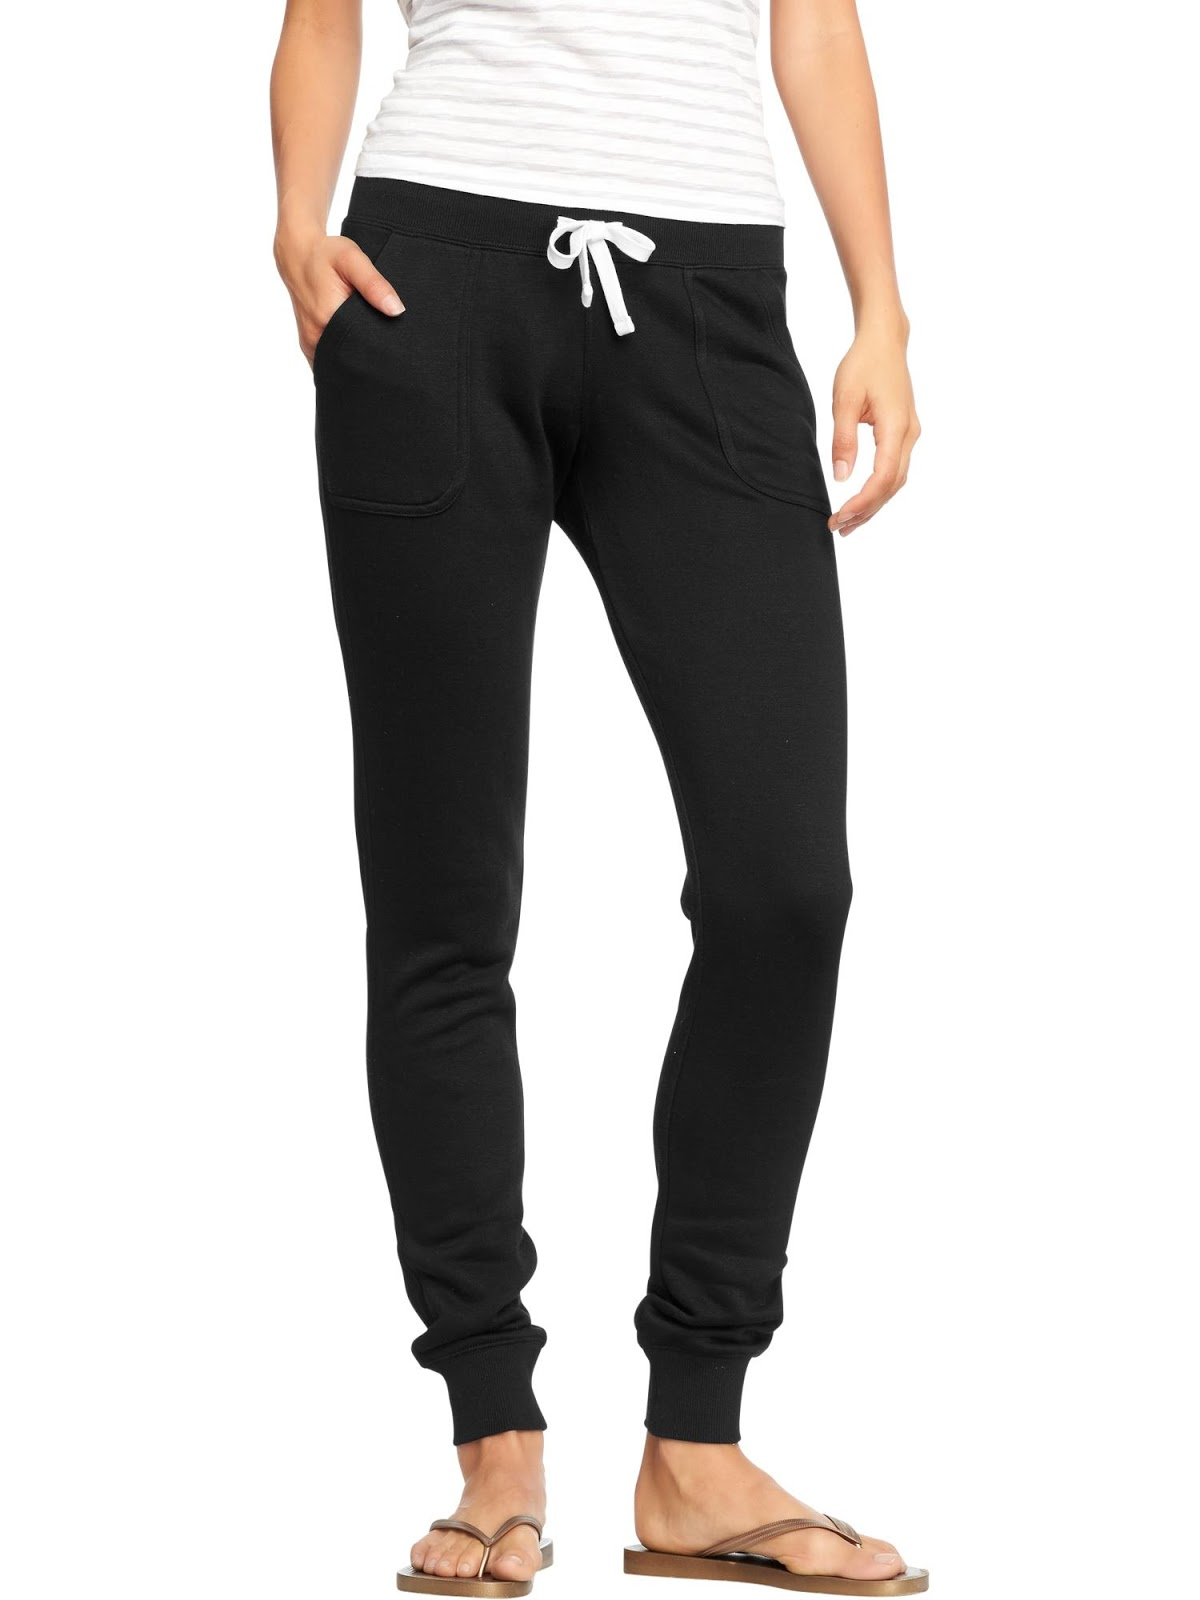 Awesome Skinny Sweatpants Outfit On Pinterest